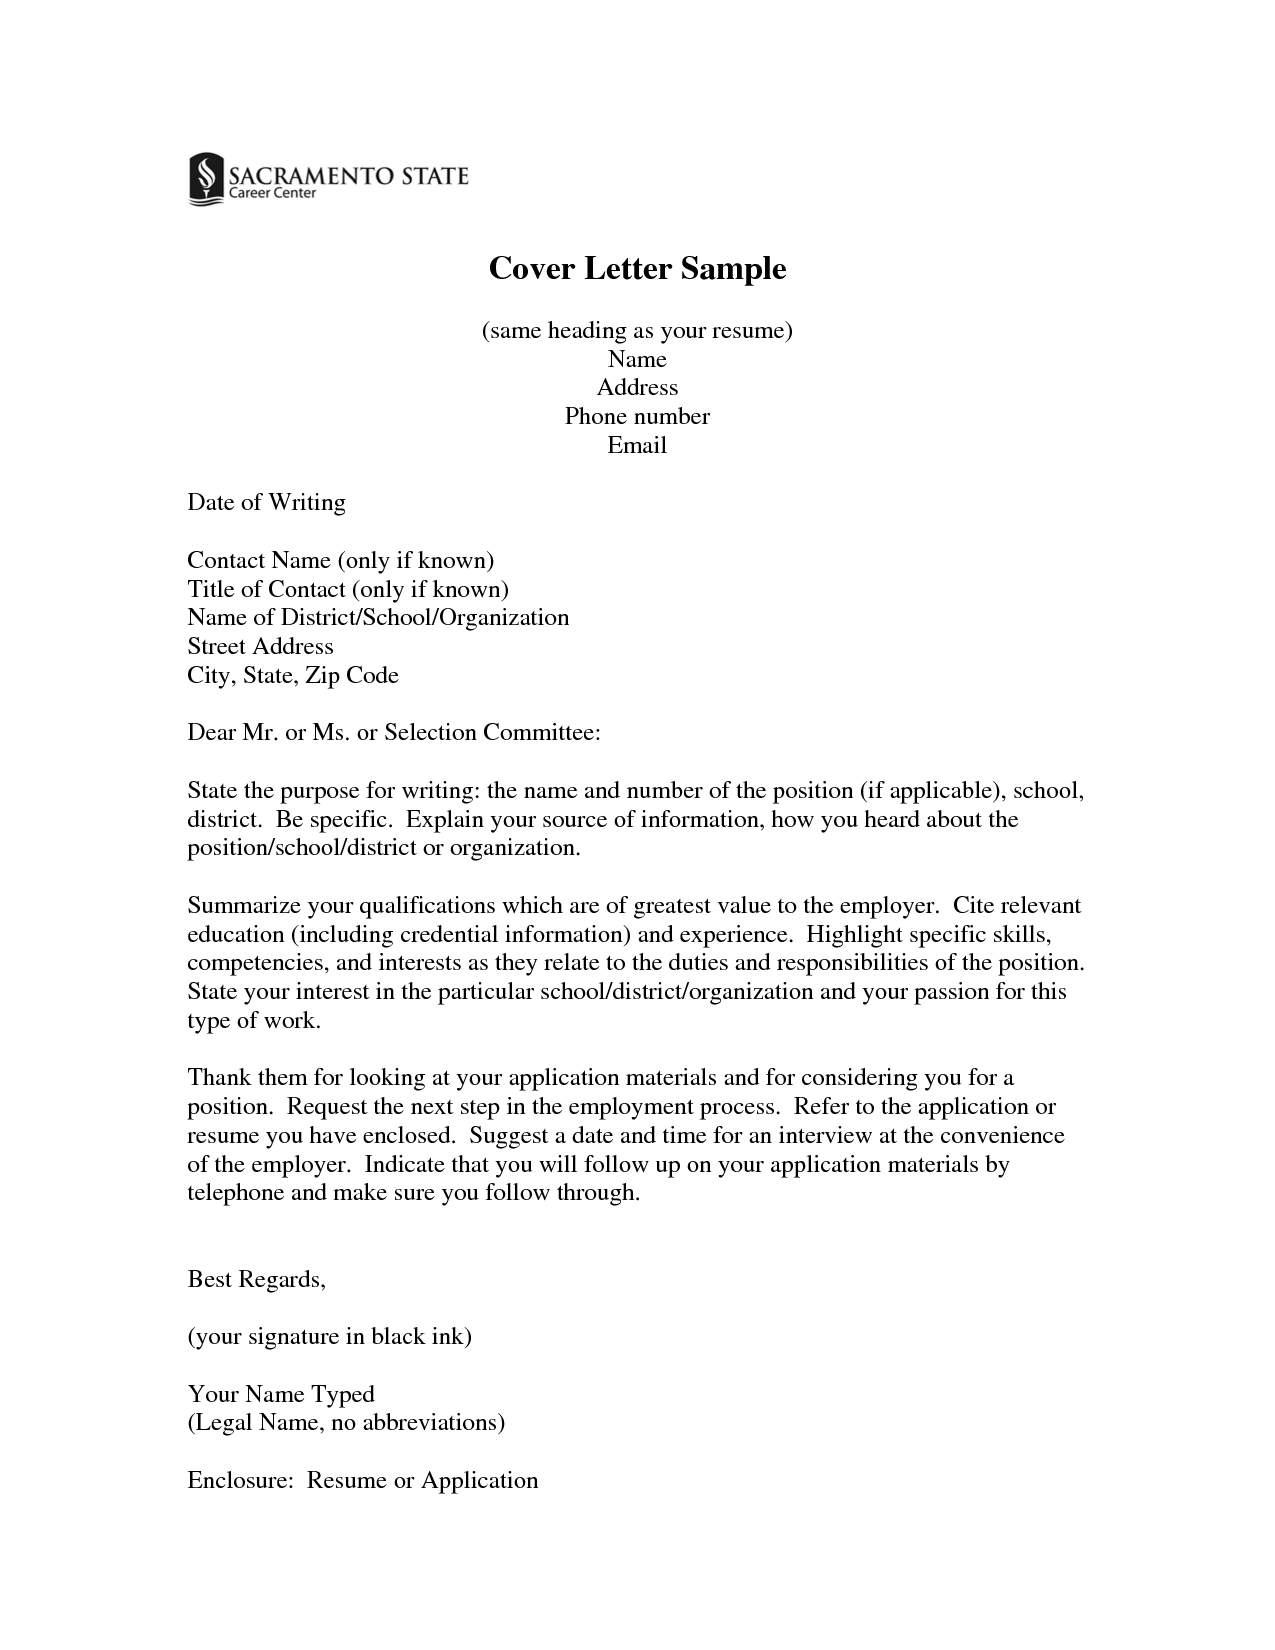 Ux Designer Cover Letter Same Cover Letters For Resume  Cover Letter Sample Same Heading